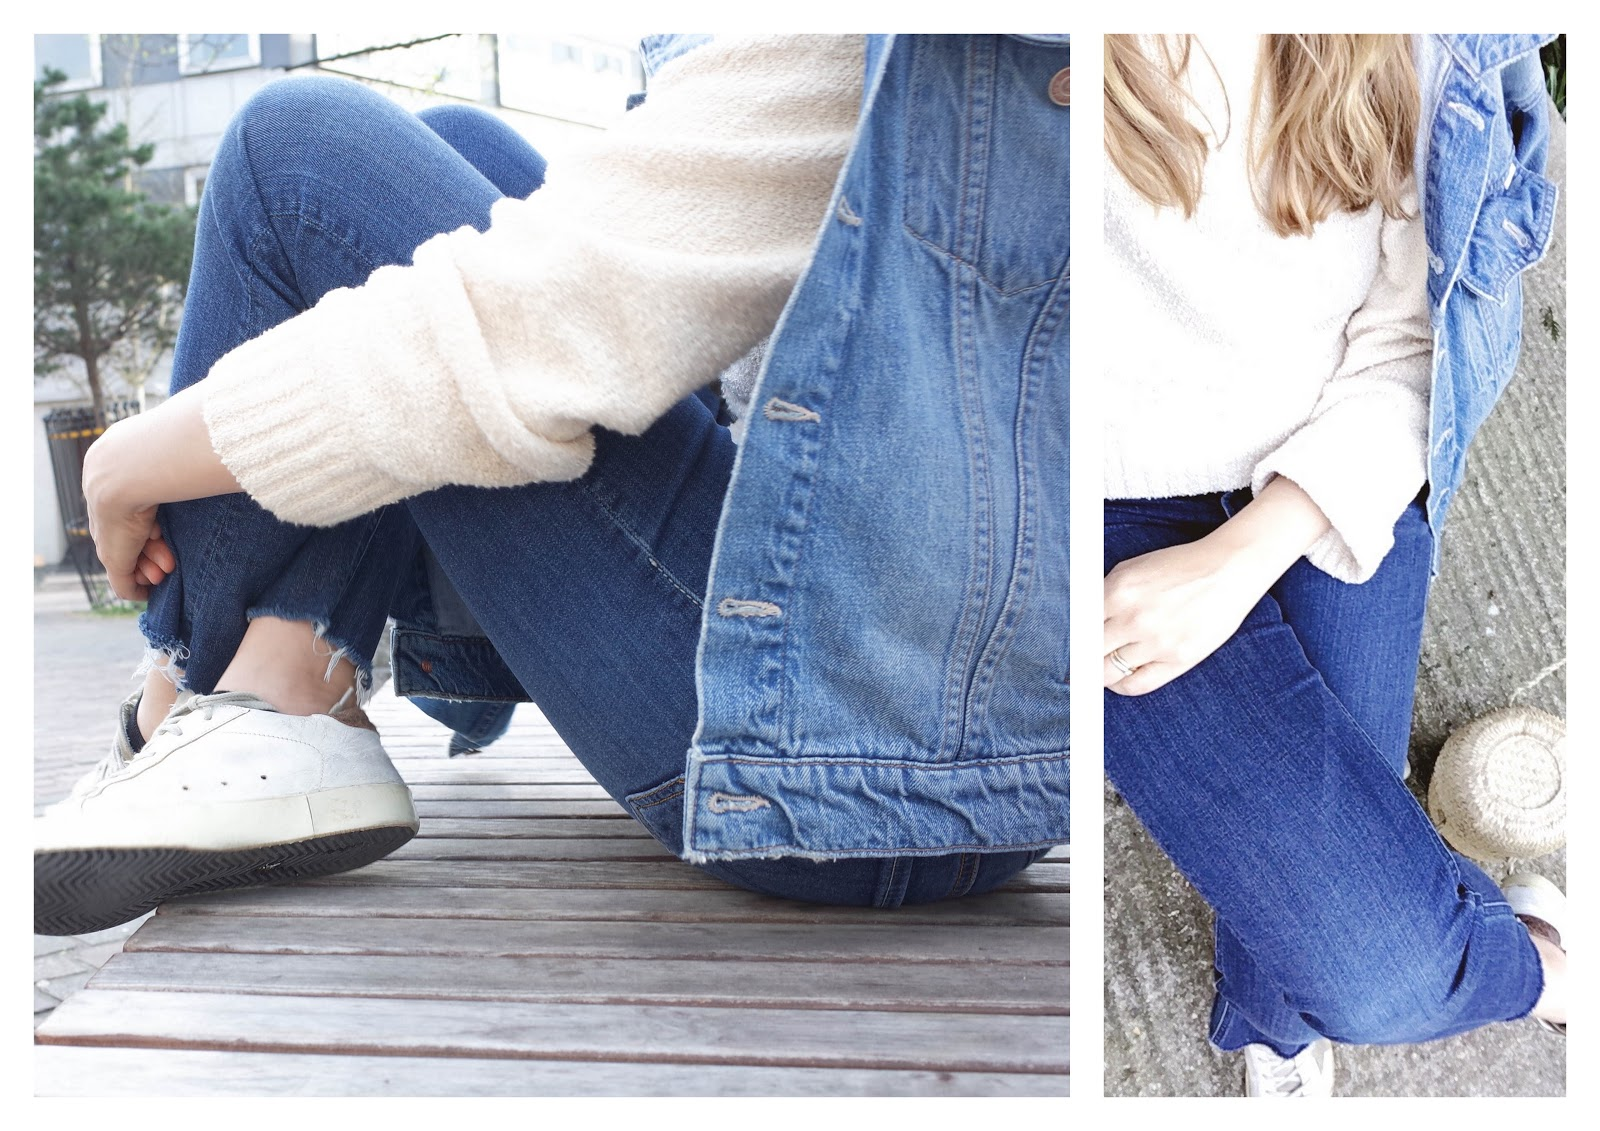 Mother denim fray, Doen phoebe basket, easy outfit uniform